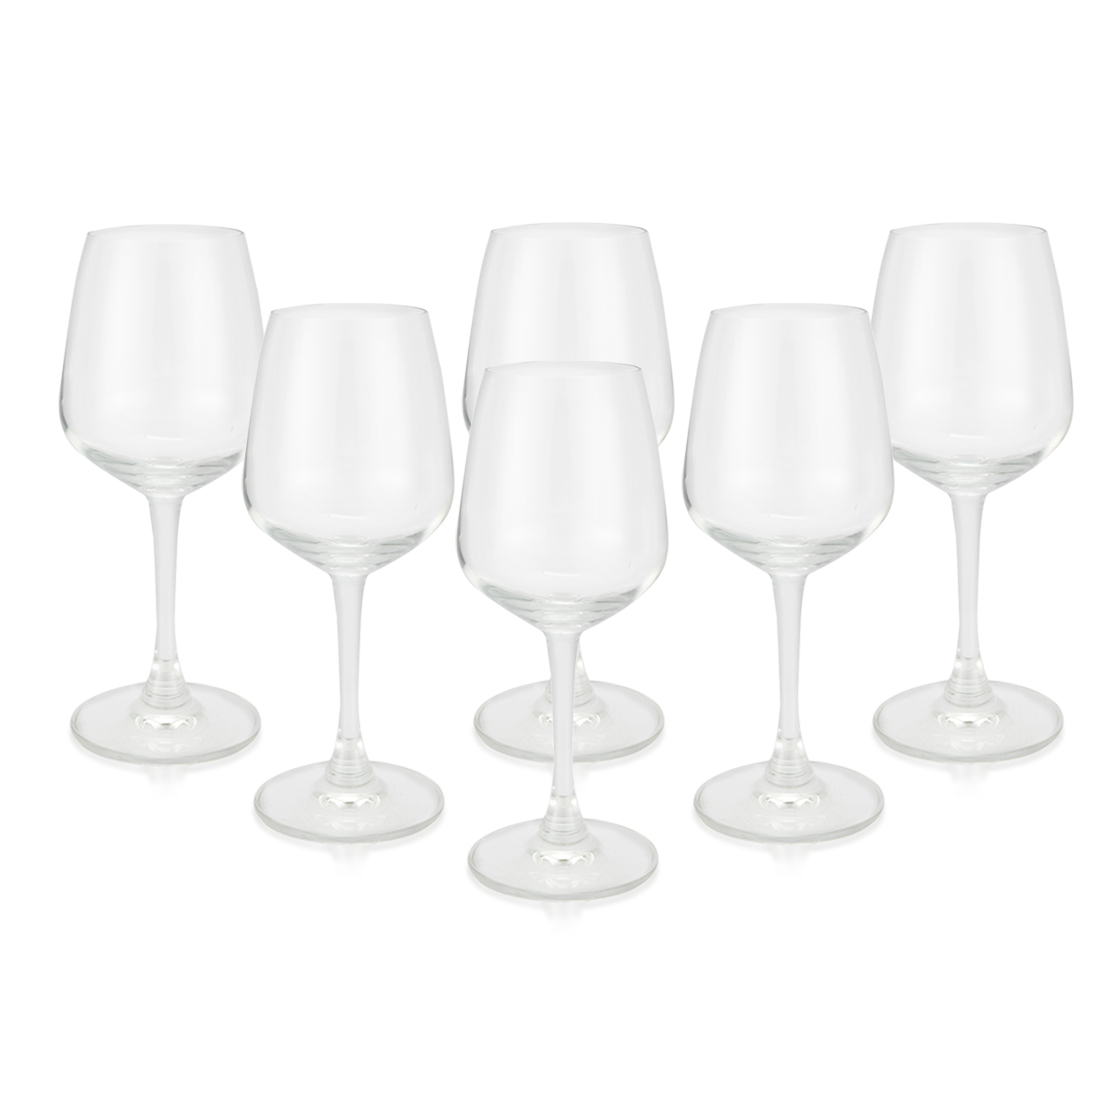 White Wine Tumbler Set Of 6 Pcs 300Ml Glass Bar Glassware in Transparent Colour by Living Essence